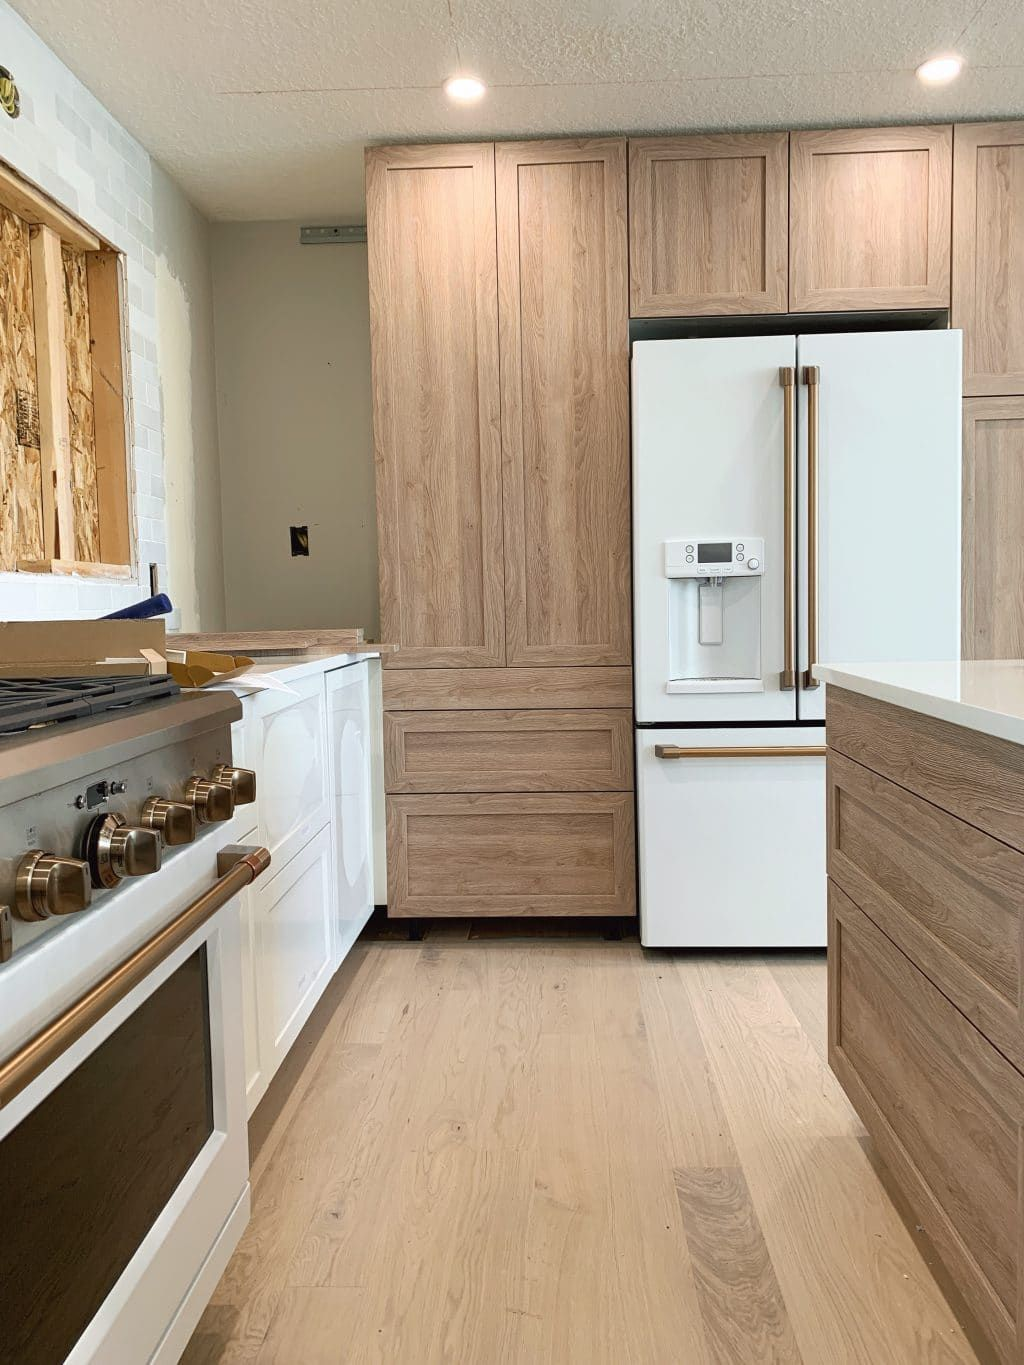 Everything You Need To Know About Using Semihandmade Fronts With Ikea Cabinets And Our Cove Line In The Fullmer Kitchen Kitchen Cabinets Fronts Ikea Kitchen Cabinets Ikea Kitchen